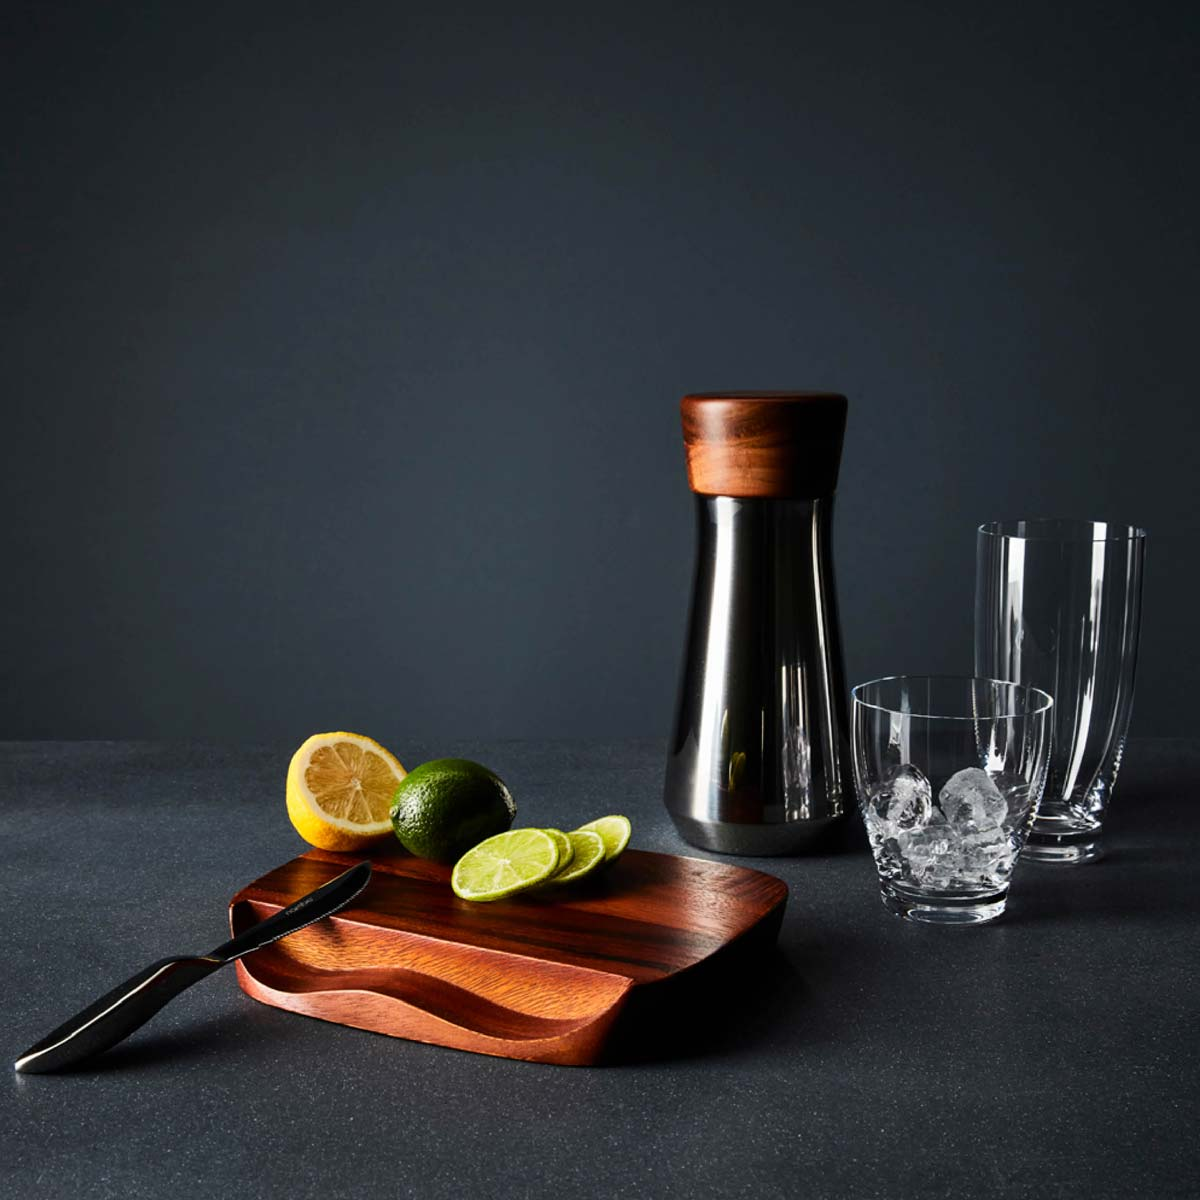 Home drinks bar accessories